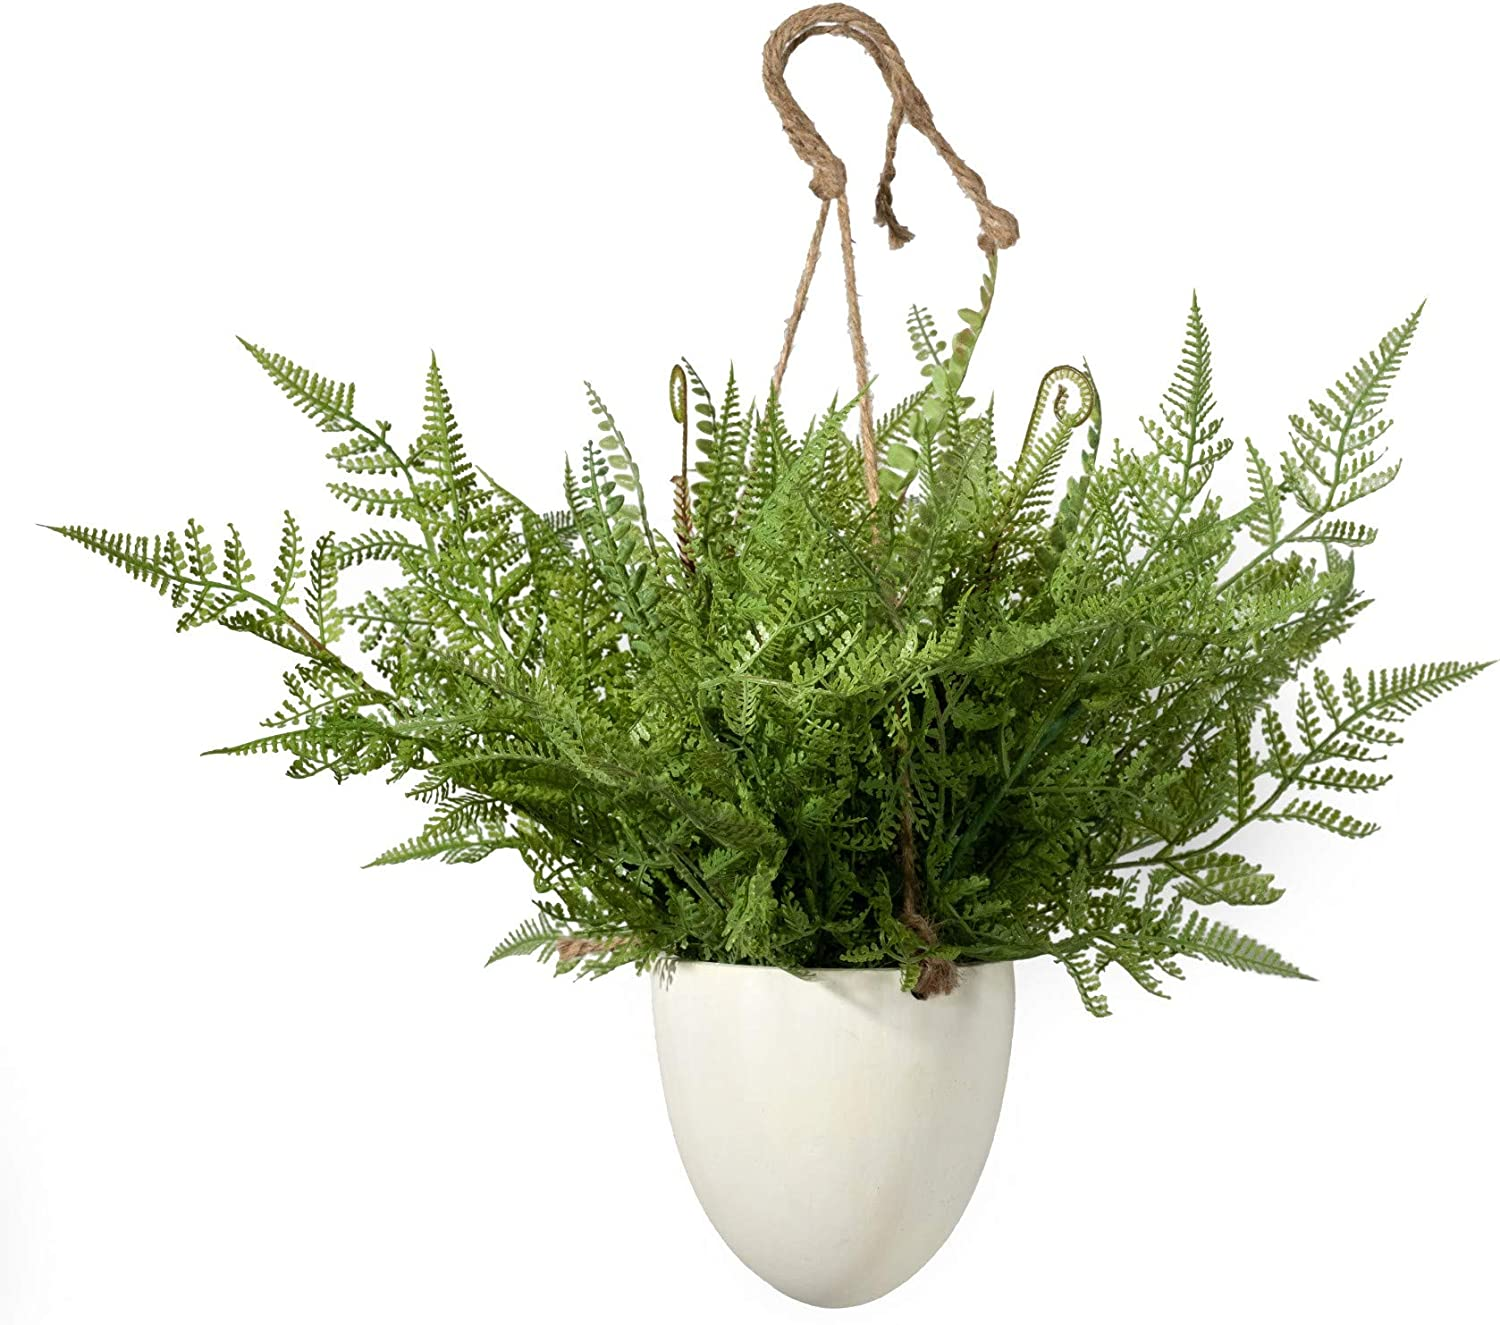 Serene Spaces Living Large Boston Fern in Hanging Pot, Fake Hanging Plant, Life Like Plants for Indoor Outdoor Garden Wedding Party Table Decor, Measures 12